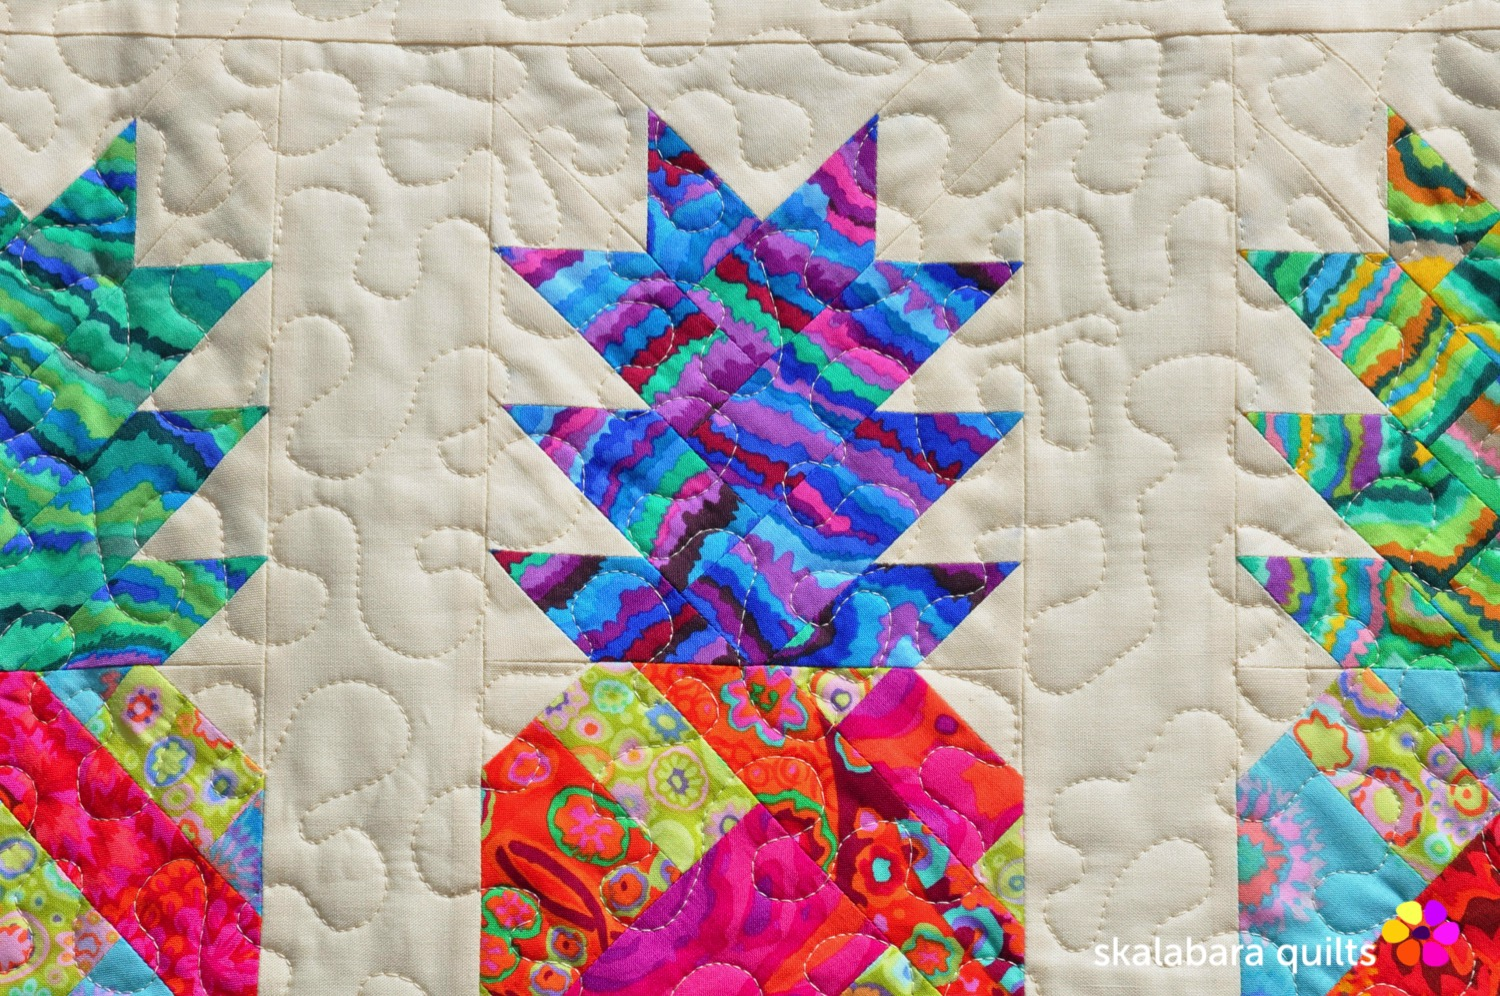 pineapple wall hanging detail 2 - skalabara quilts